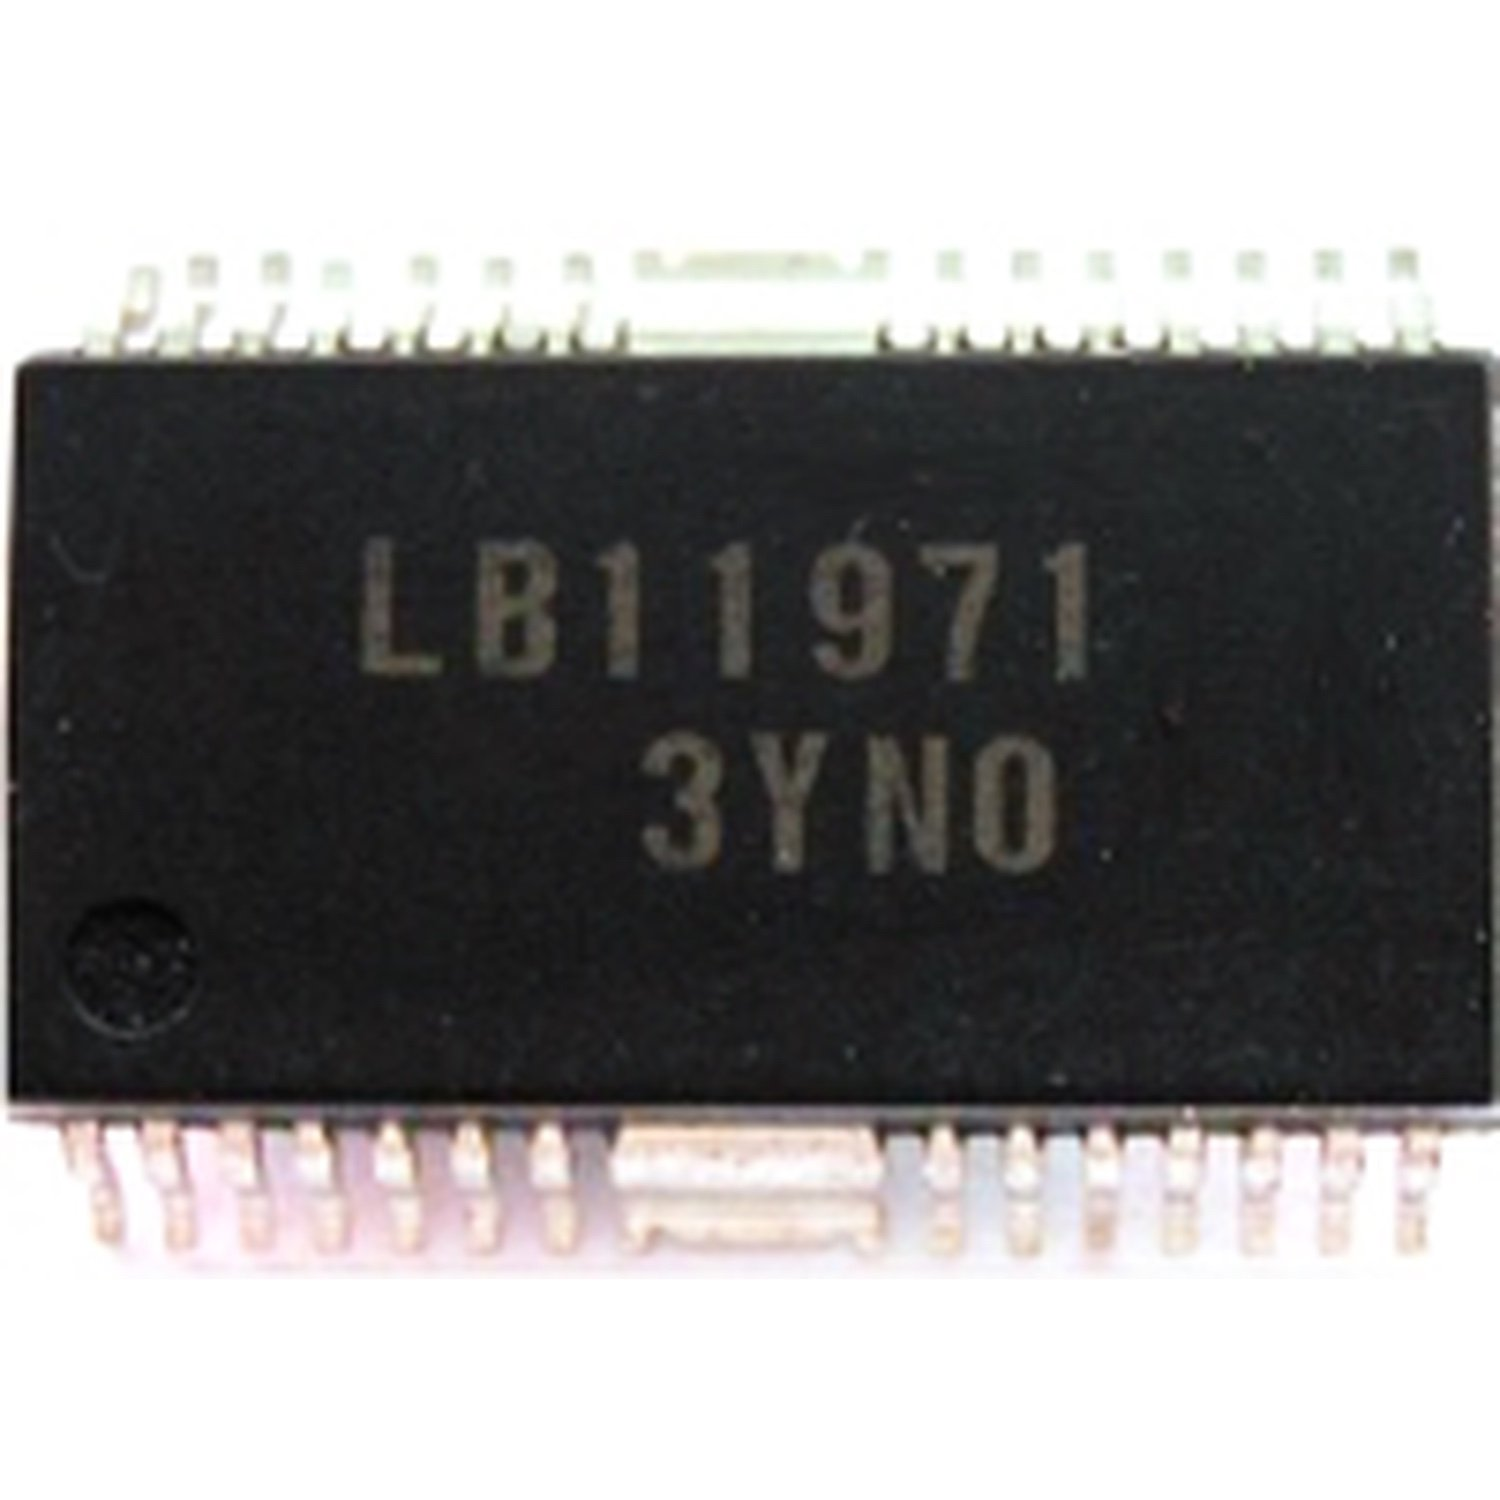 PS2 IC LB11971 (ORIGINAL FOR SONY PS2 V9-V11) 10pcs pt2272 m4s sop20 pt2272 sop smd new and original ic free shipping